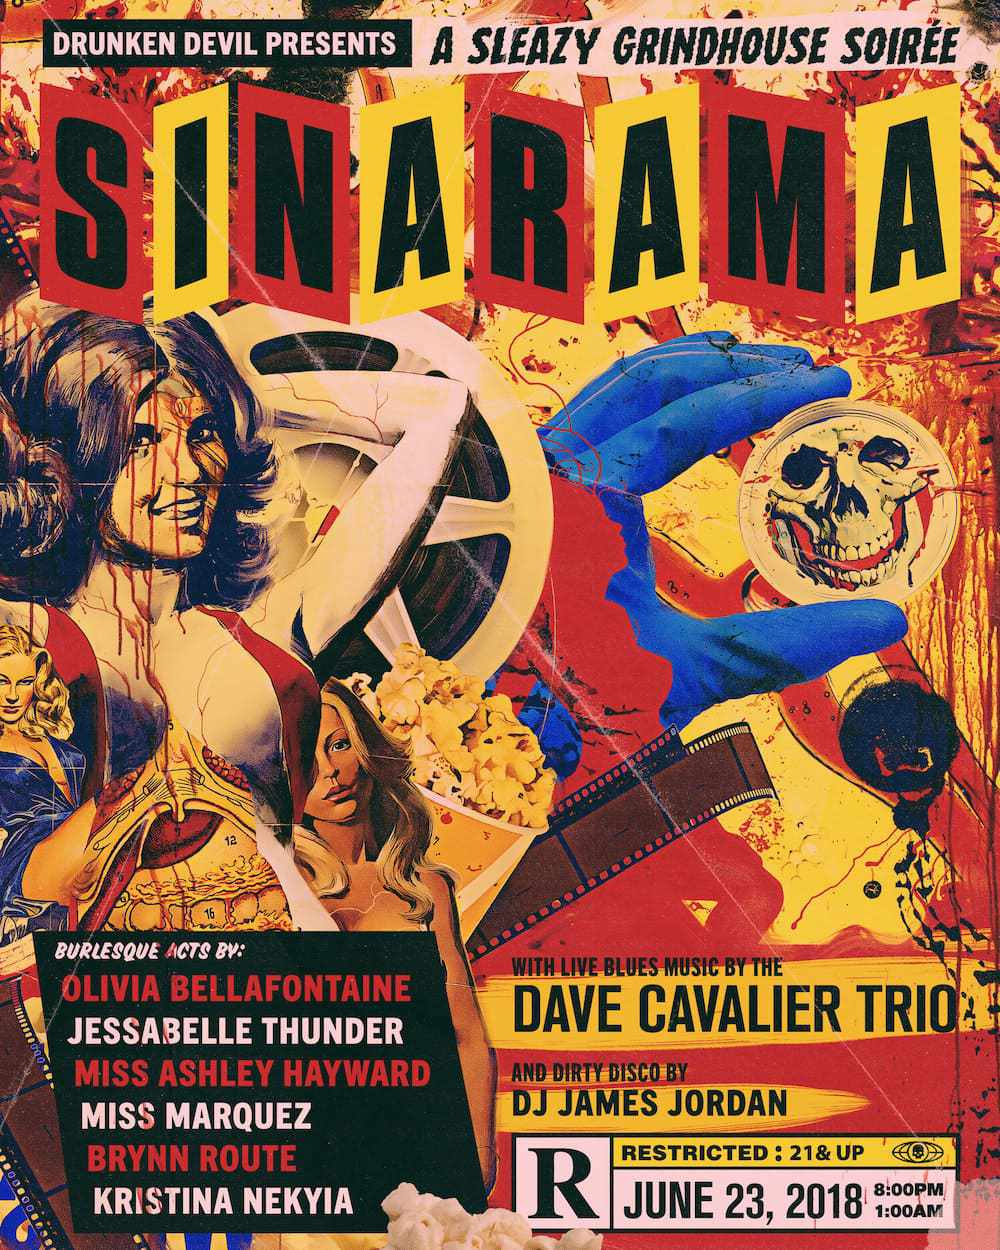 Drunken Devil's 'Sin-A-Rama': A Sleazy Homage to 1970's Grindhouse Cinema